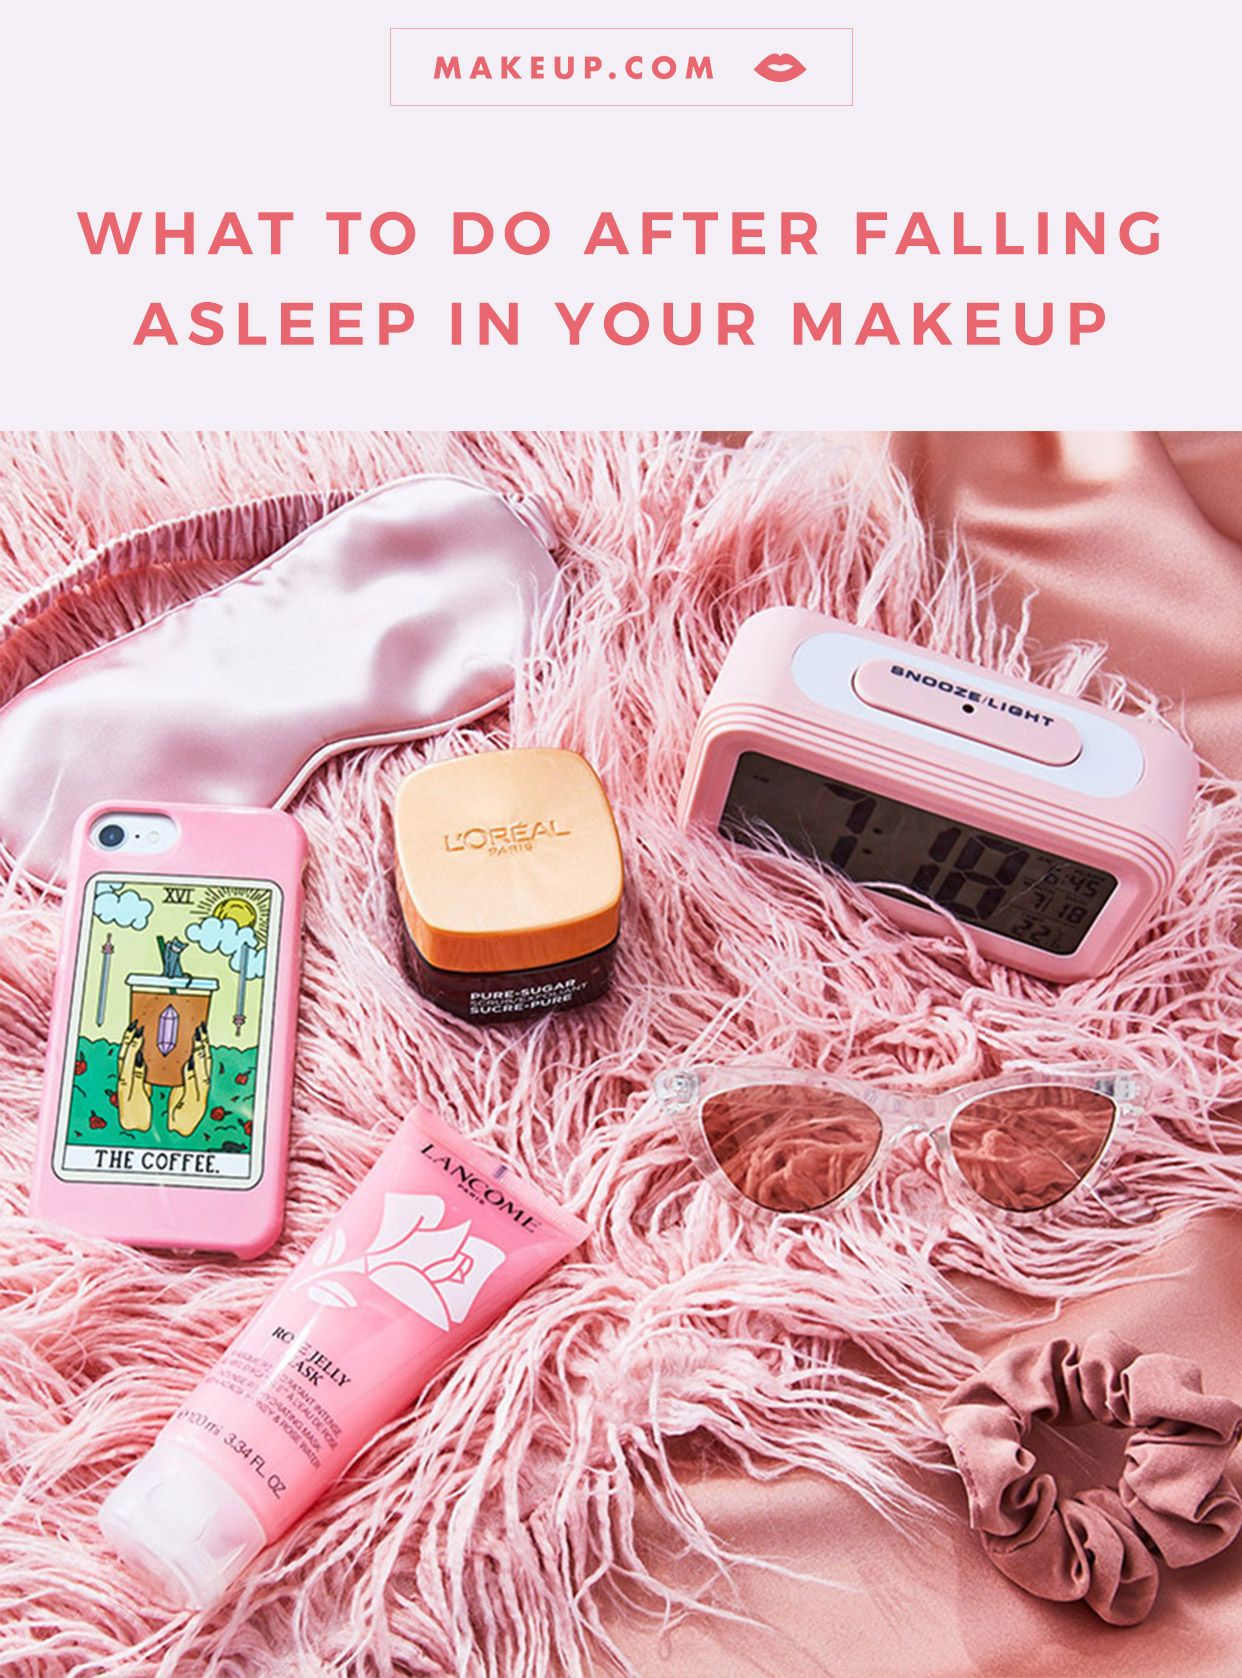 So You Slept In Your Makeup — Here's How to Recover